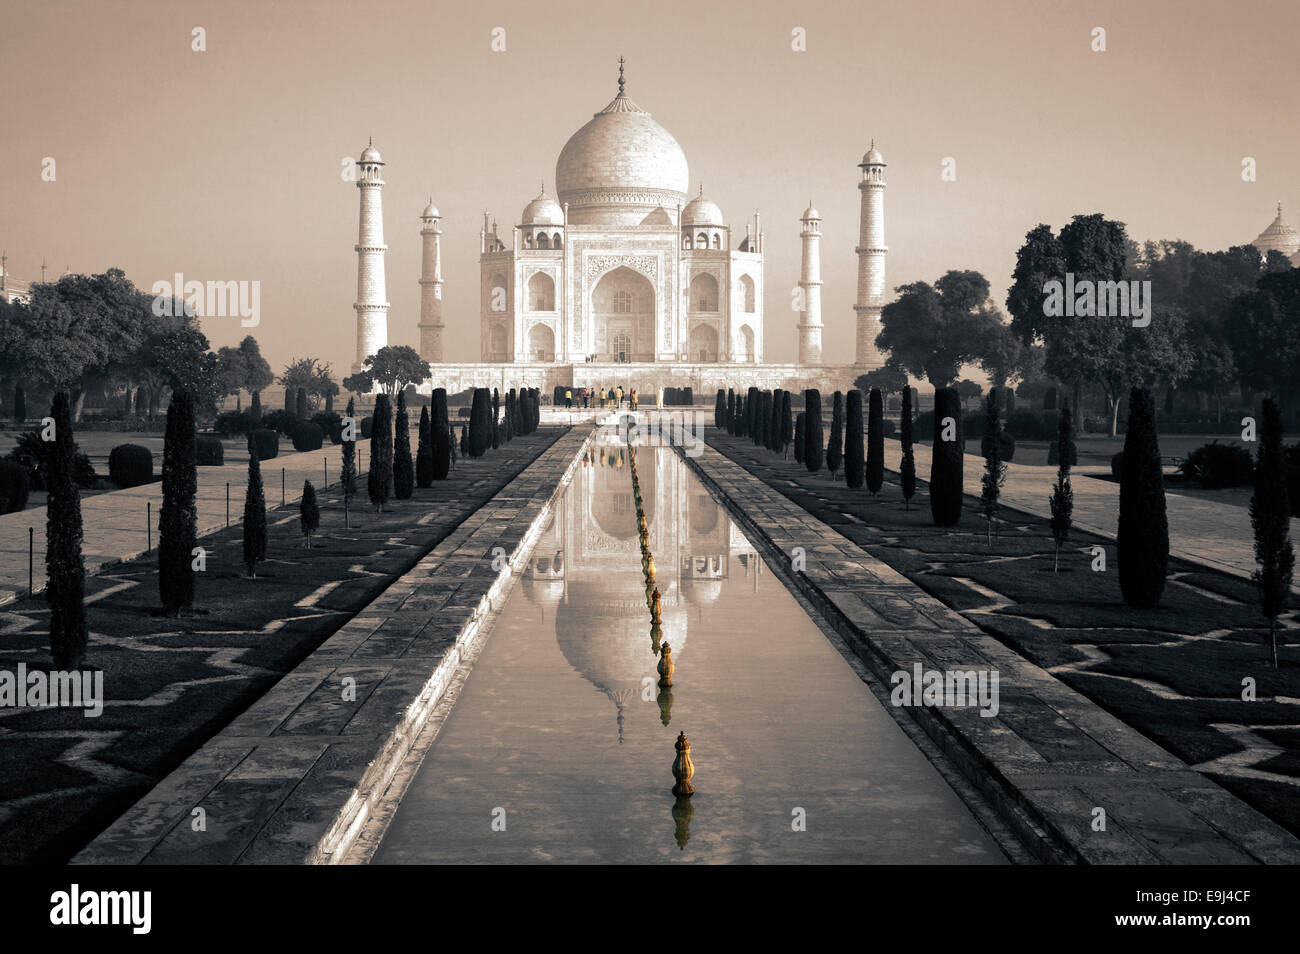 TAJ MAHAL AGRA INDIA MONOCHROME WITH PEOPLE IN COLOUR - Stock Image